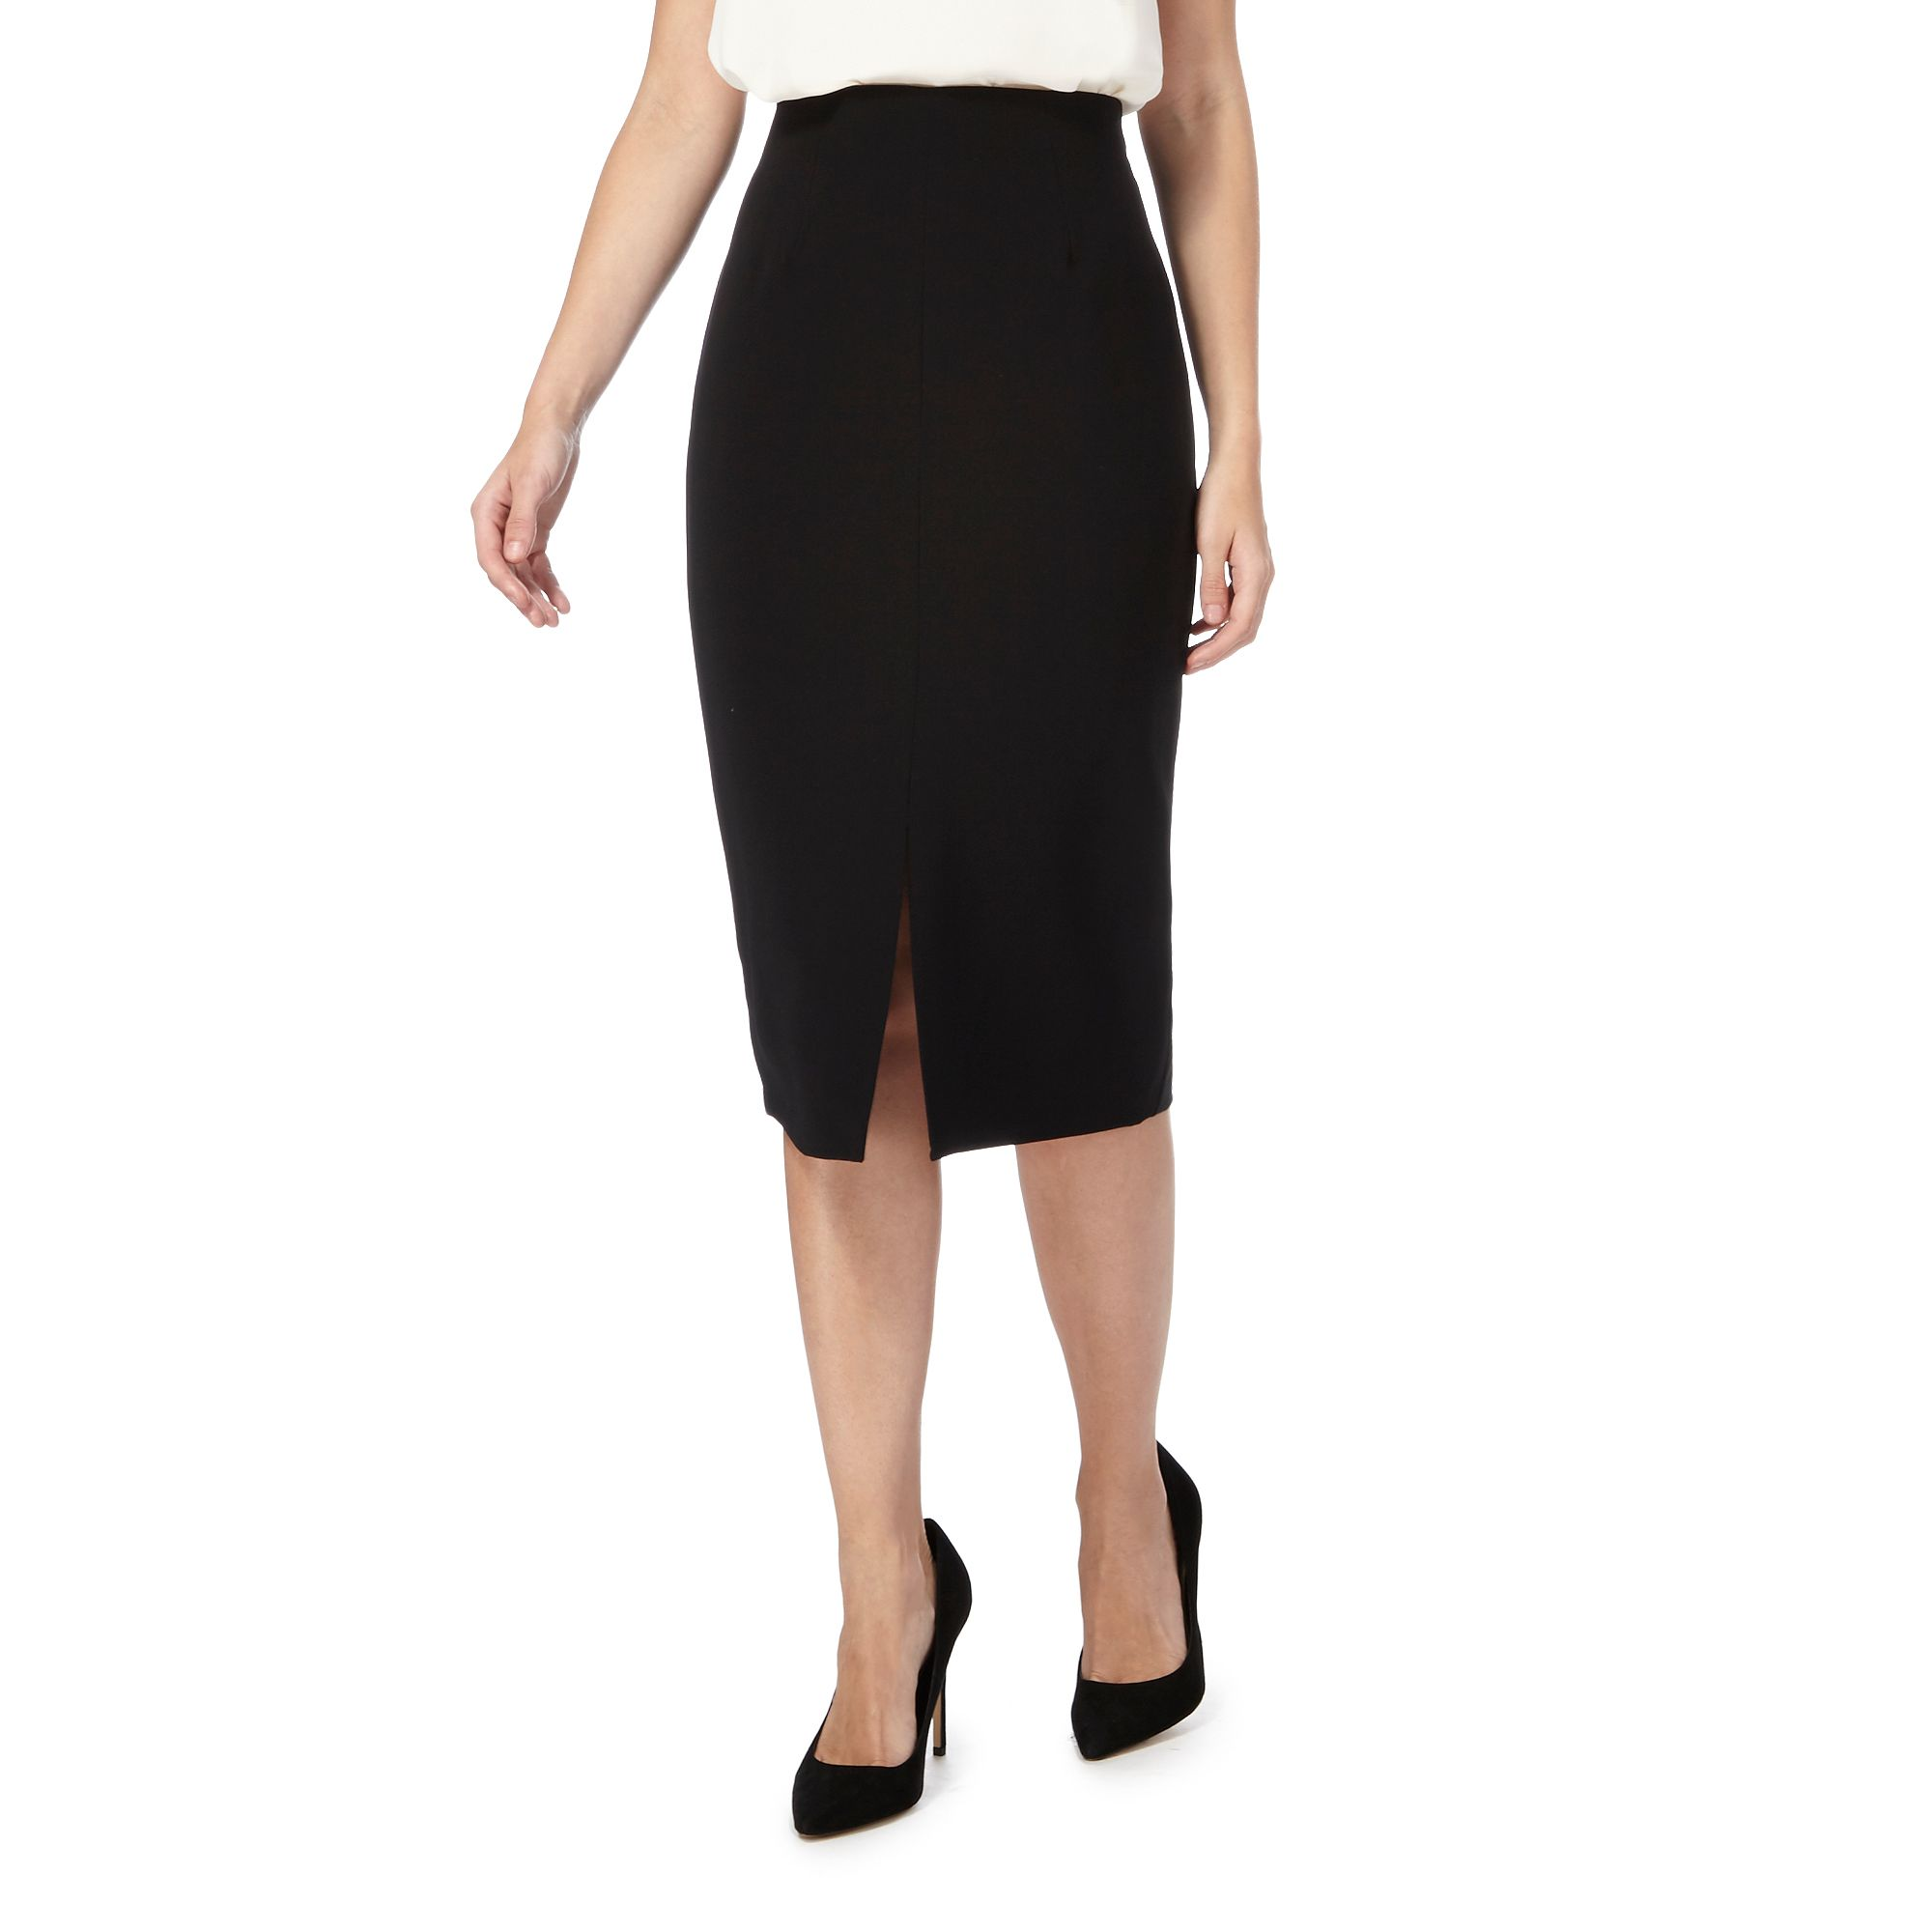 principles by ben de lisi womens black pencil skirt from